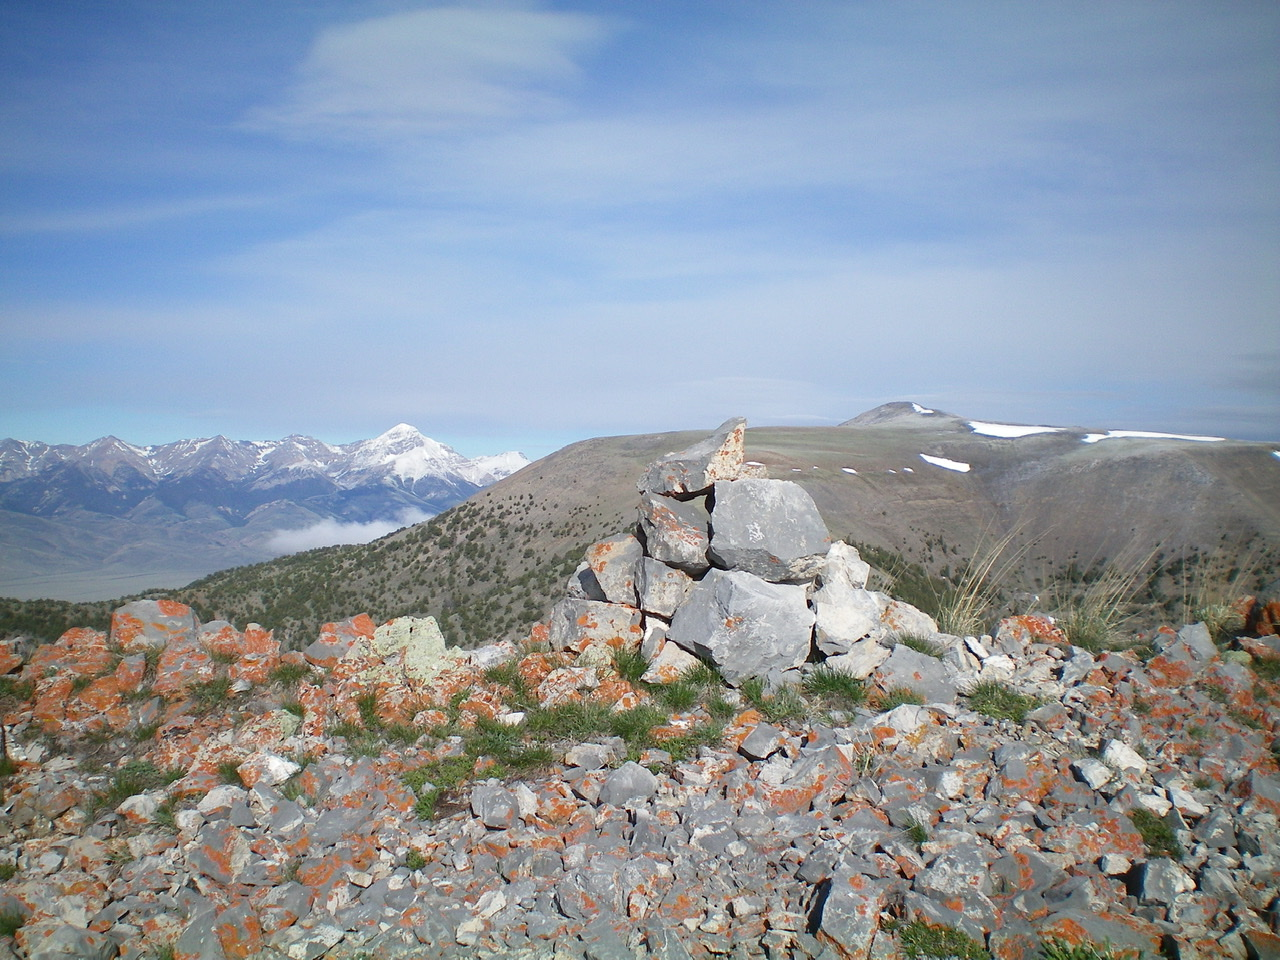 The summit cairn atop Peak 9877 with Copper Mountain (right of center) and snow-clad Diamond Peak (left of center) in the distance. Livingston Douglas Photo